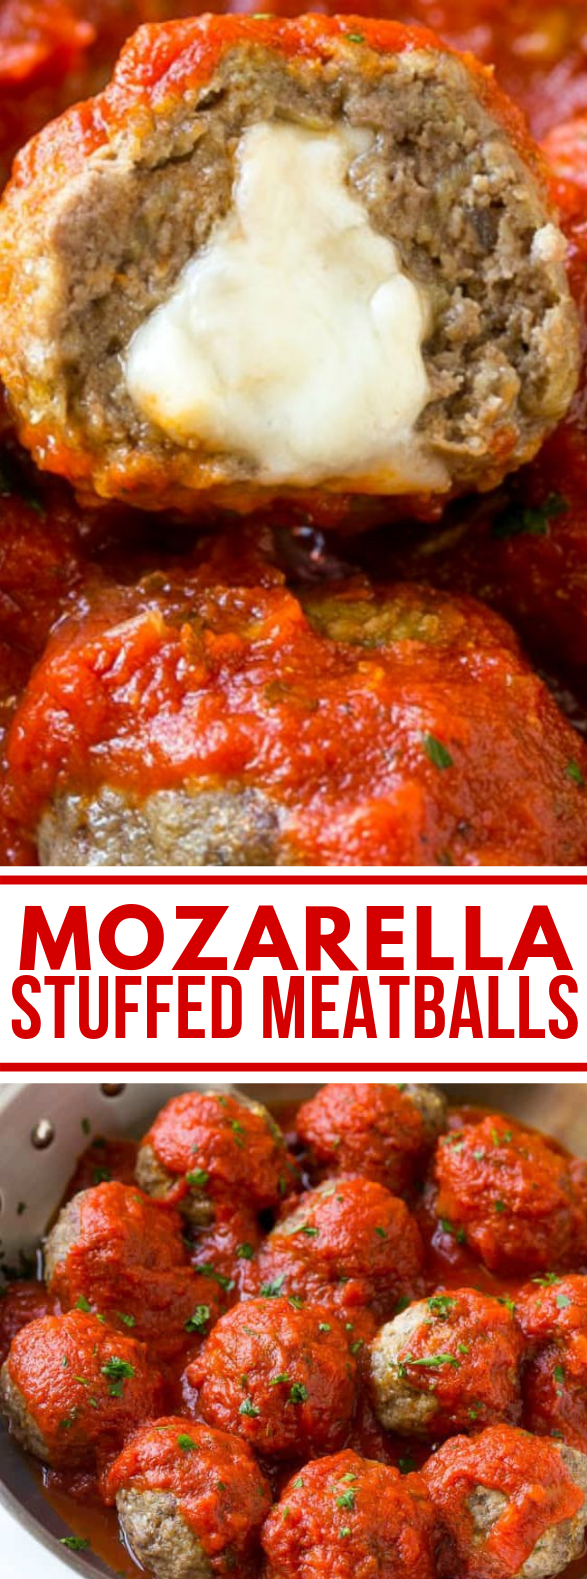 MOZZARELLA STUFFED MEATBALLS #partyappetizer #heartymeal